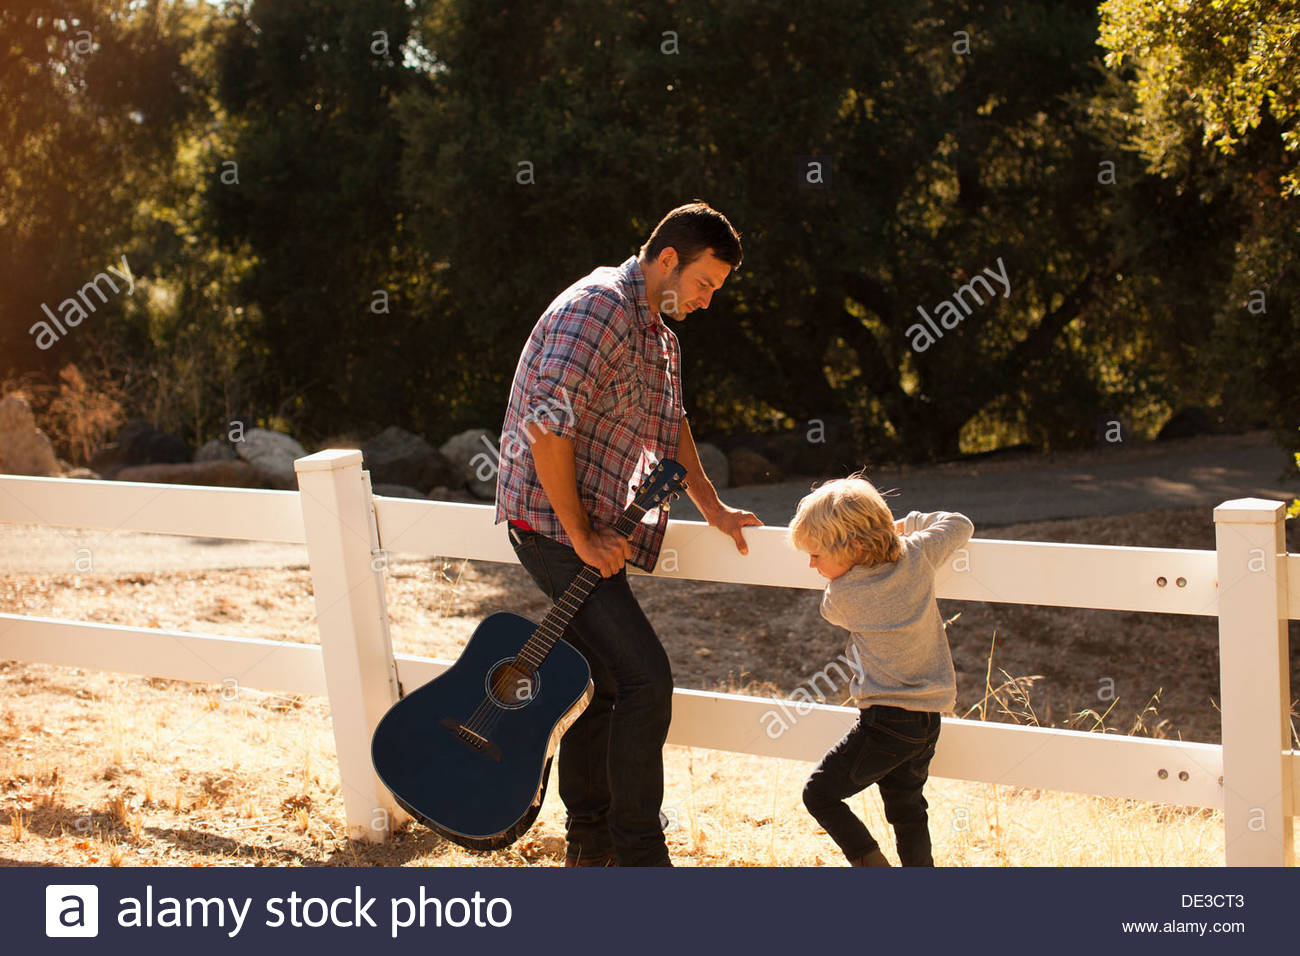 Father and son playing in dirt road - Stock Image